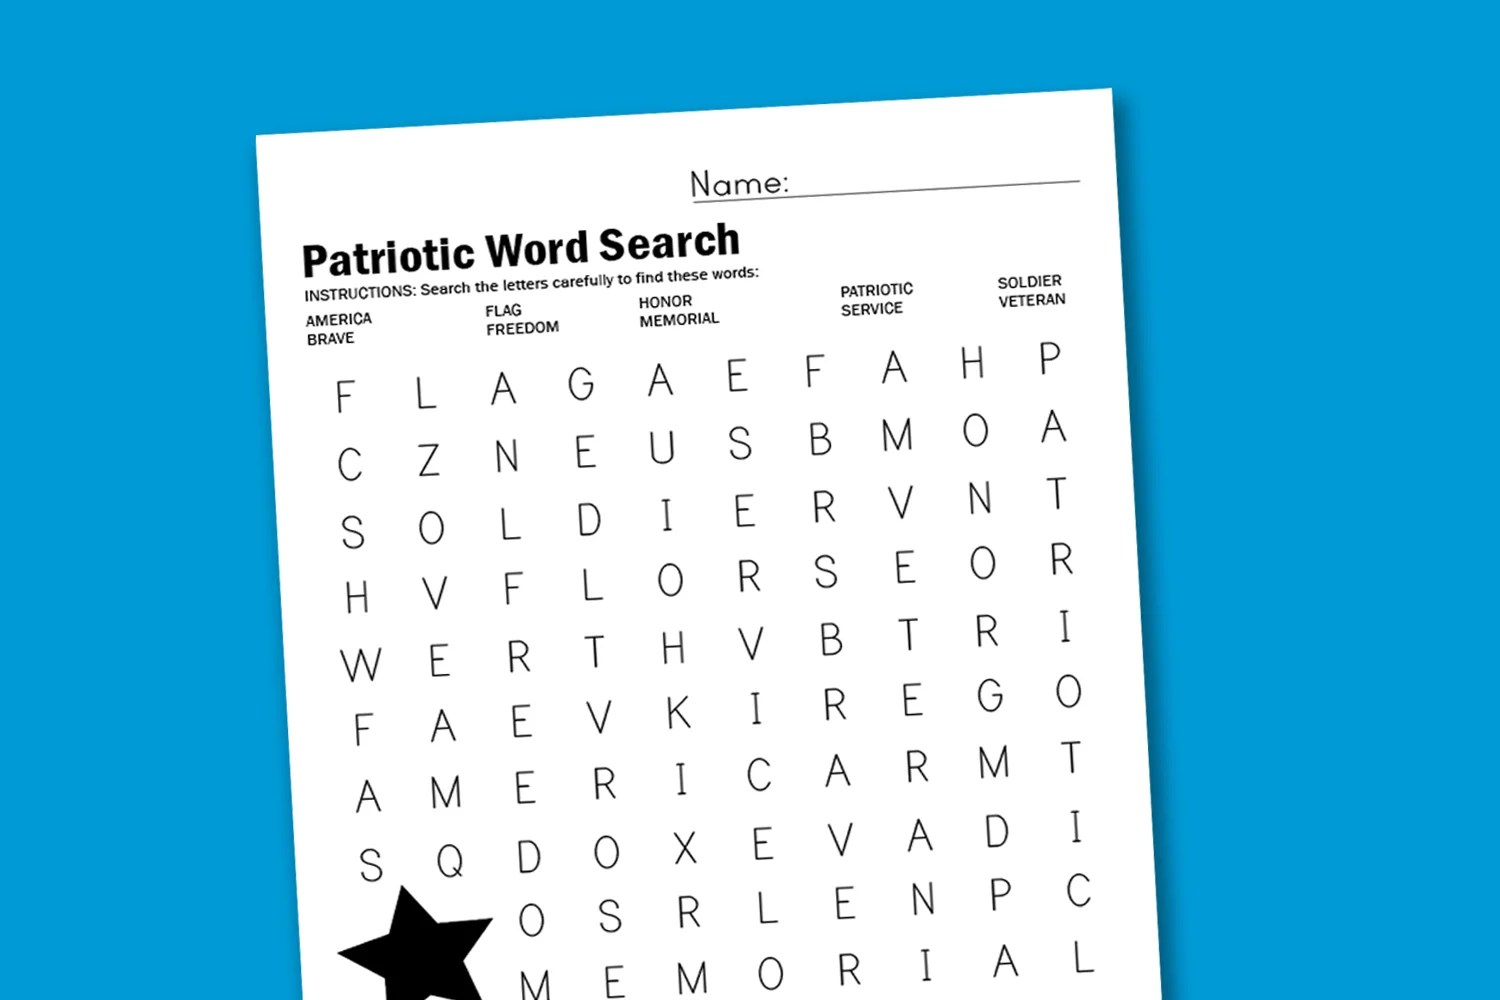 Patriotic Word Search